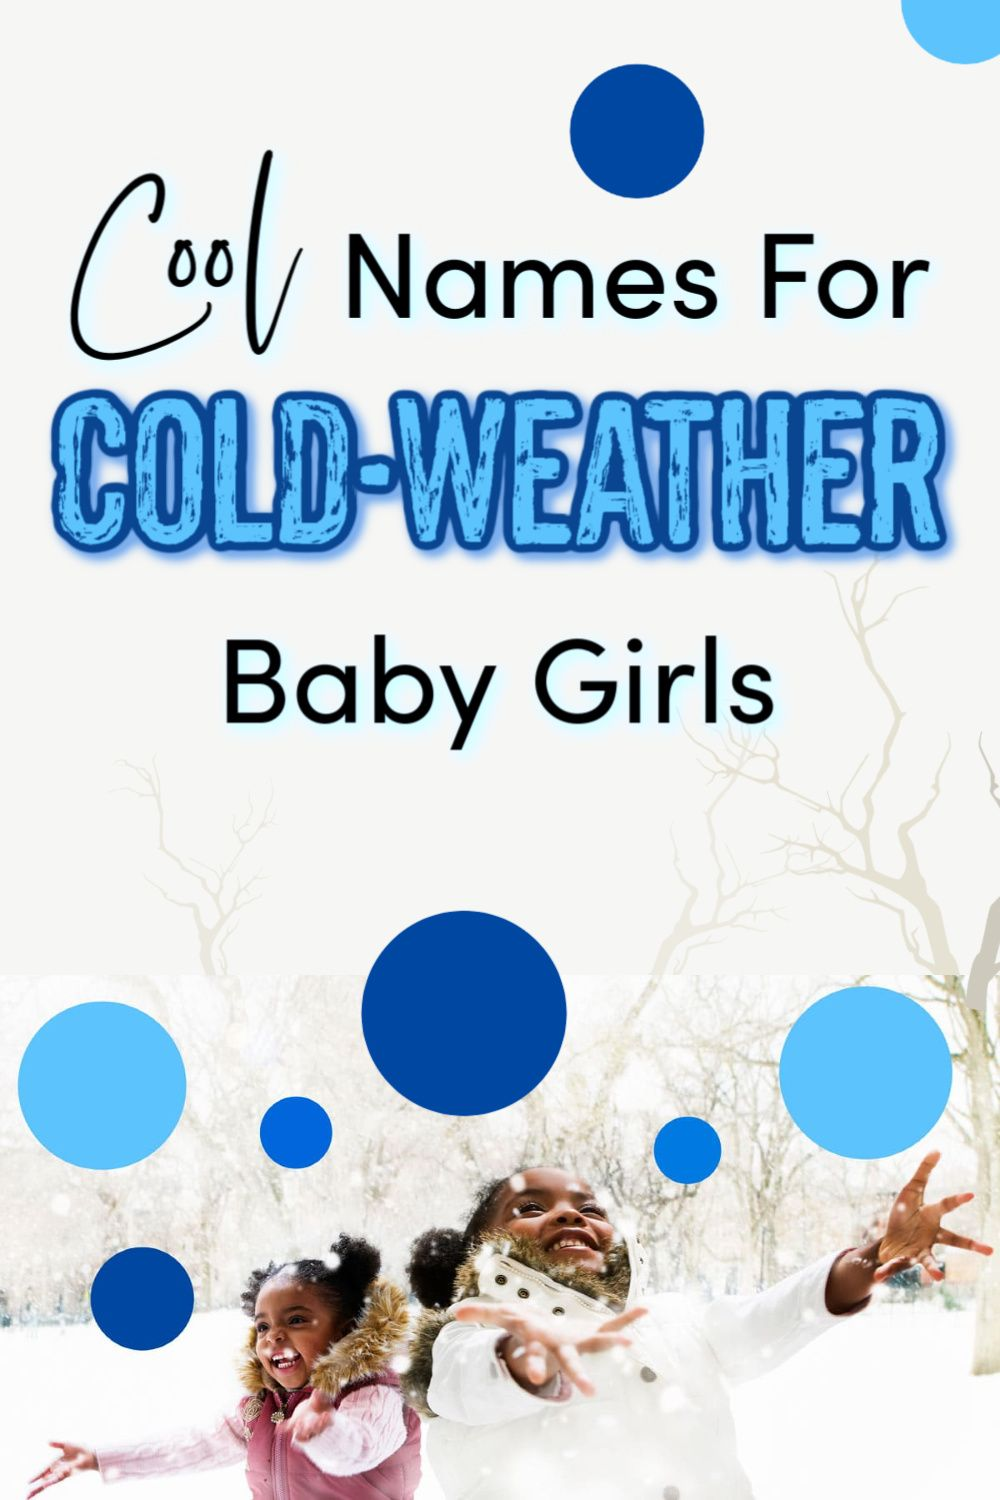 11 Cool Names For Cold-Weather Baby Girls | Girl names ...